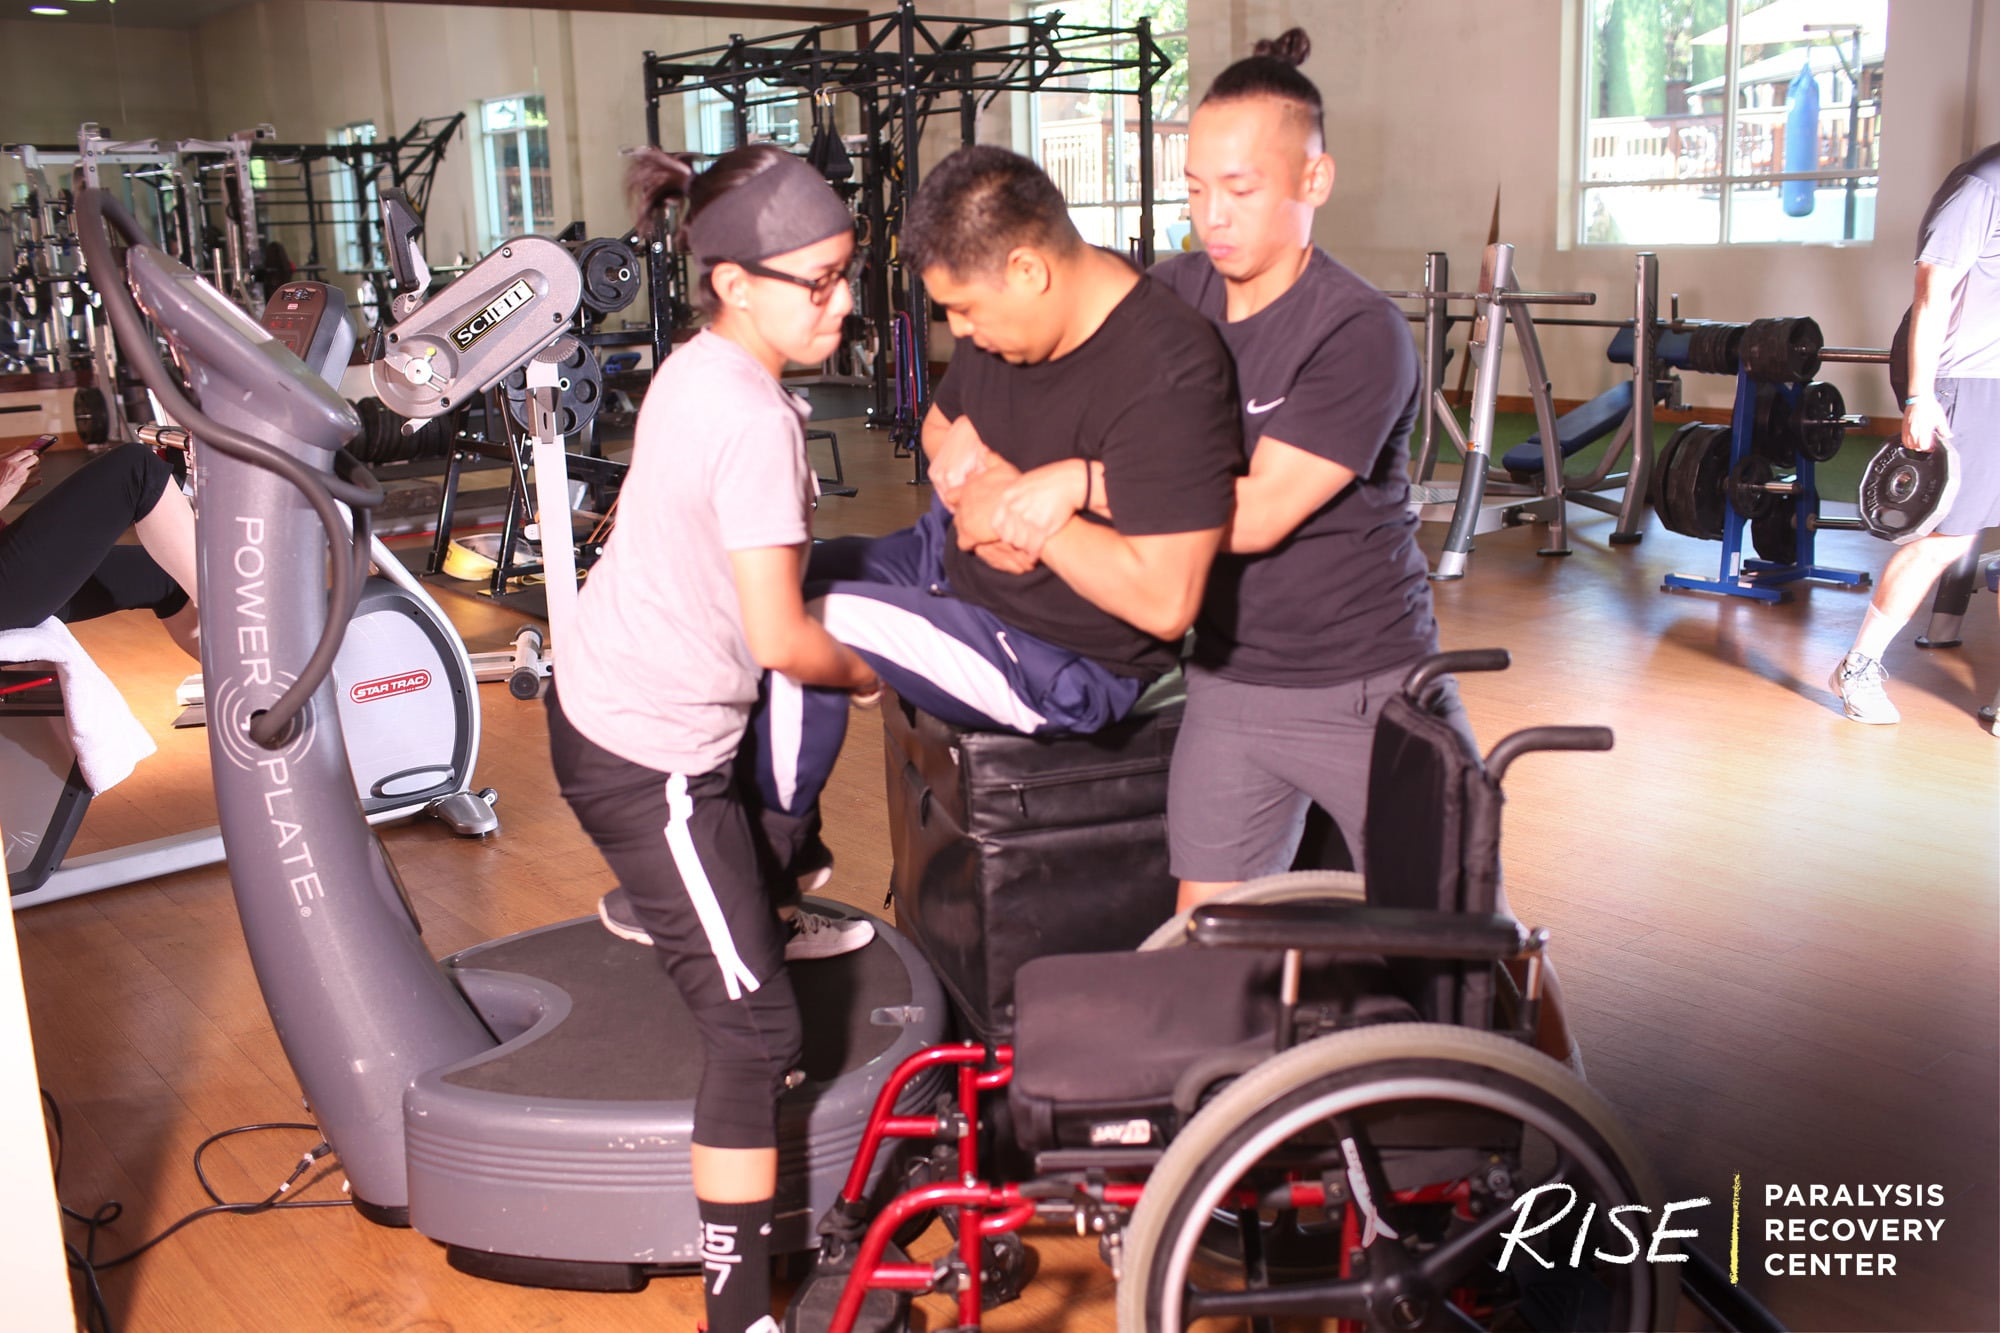 Two trainers help a man get out of his wheelchair onto a machine at the gym.